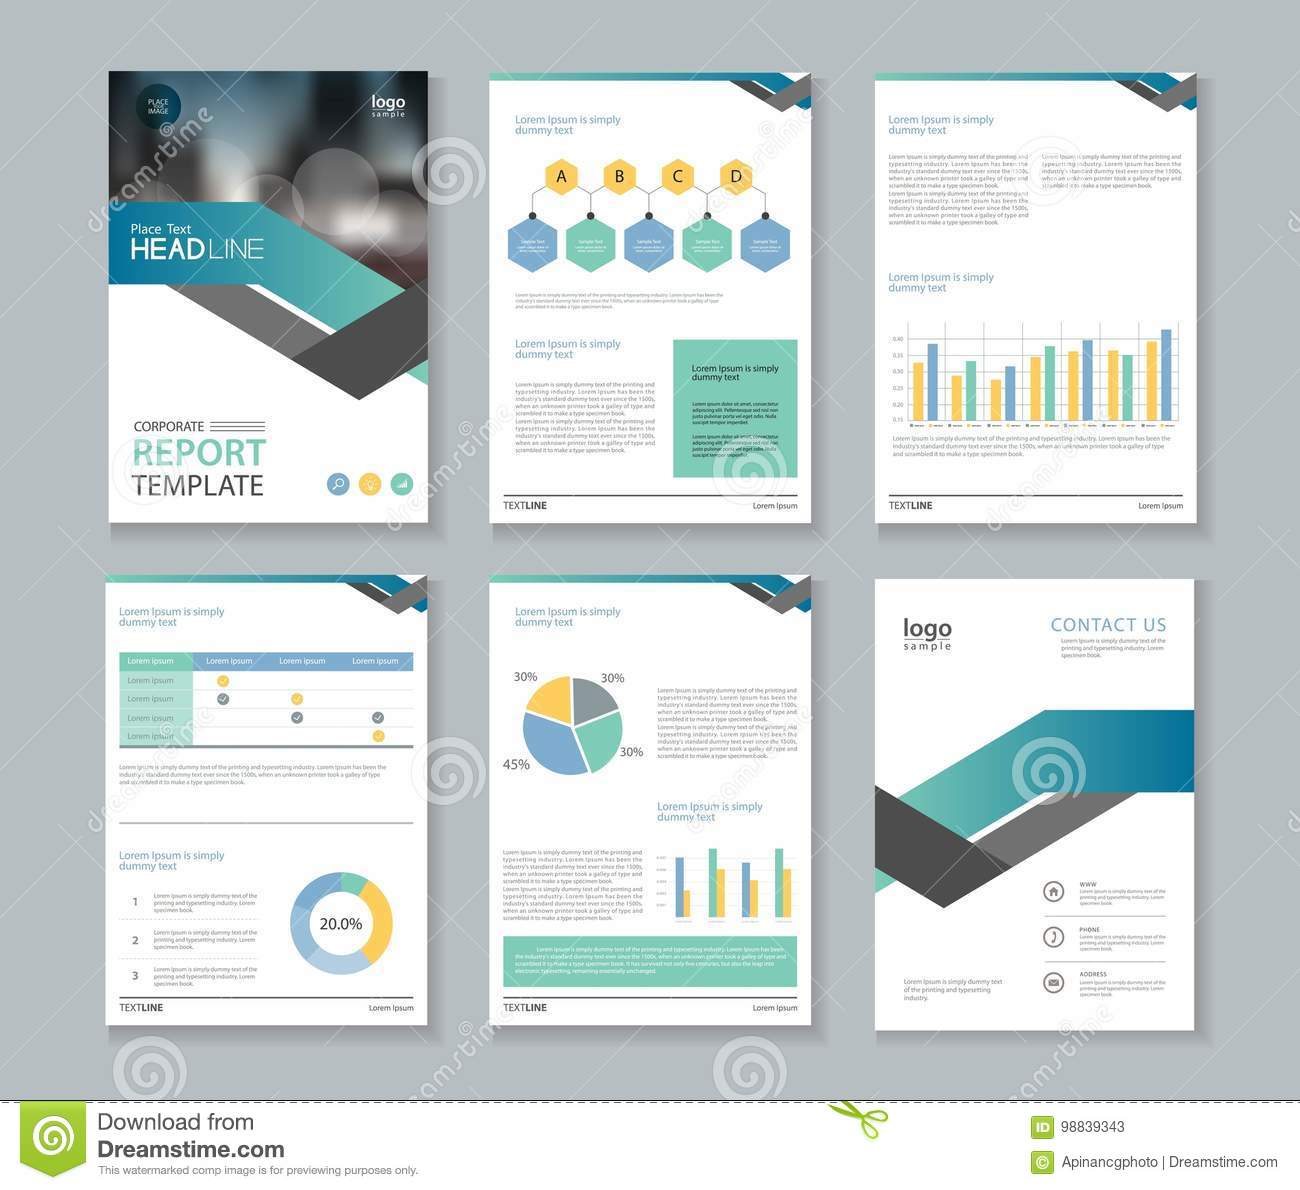 8ad3a4912 Template Design For Company Profile